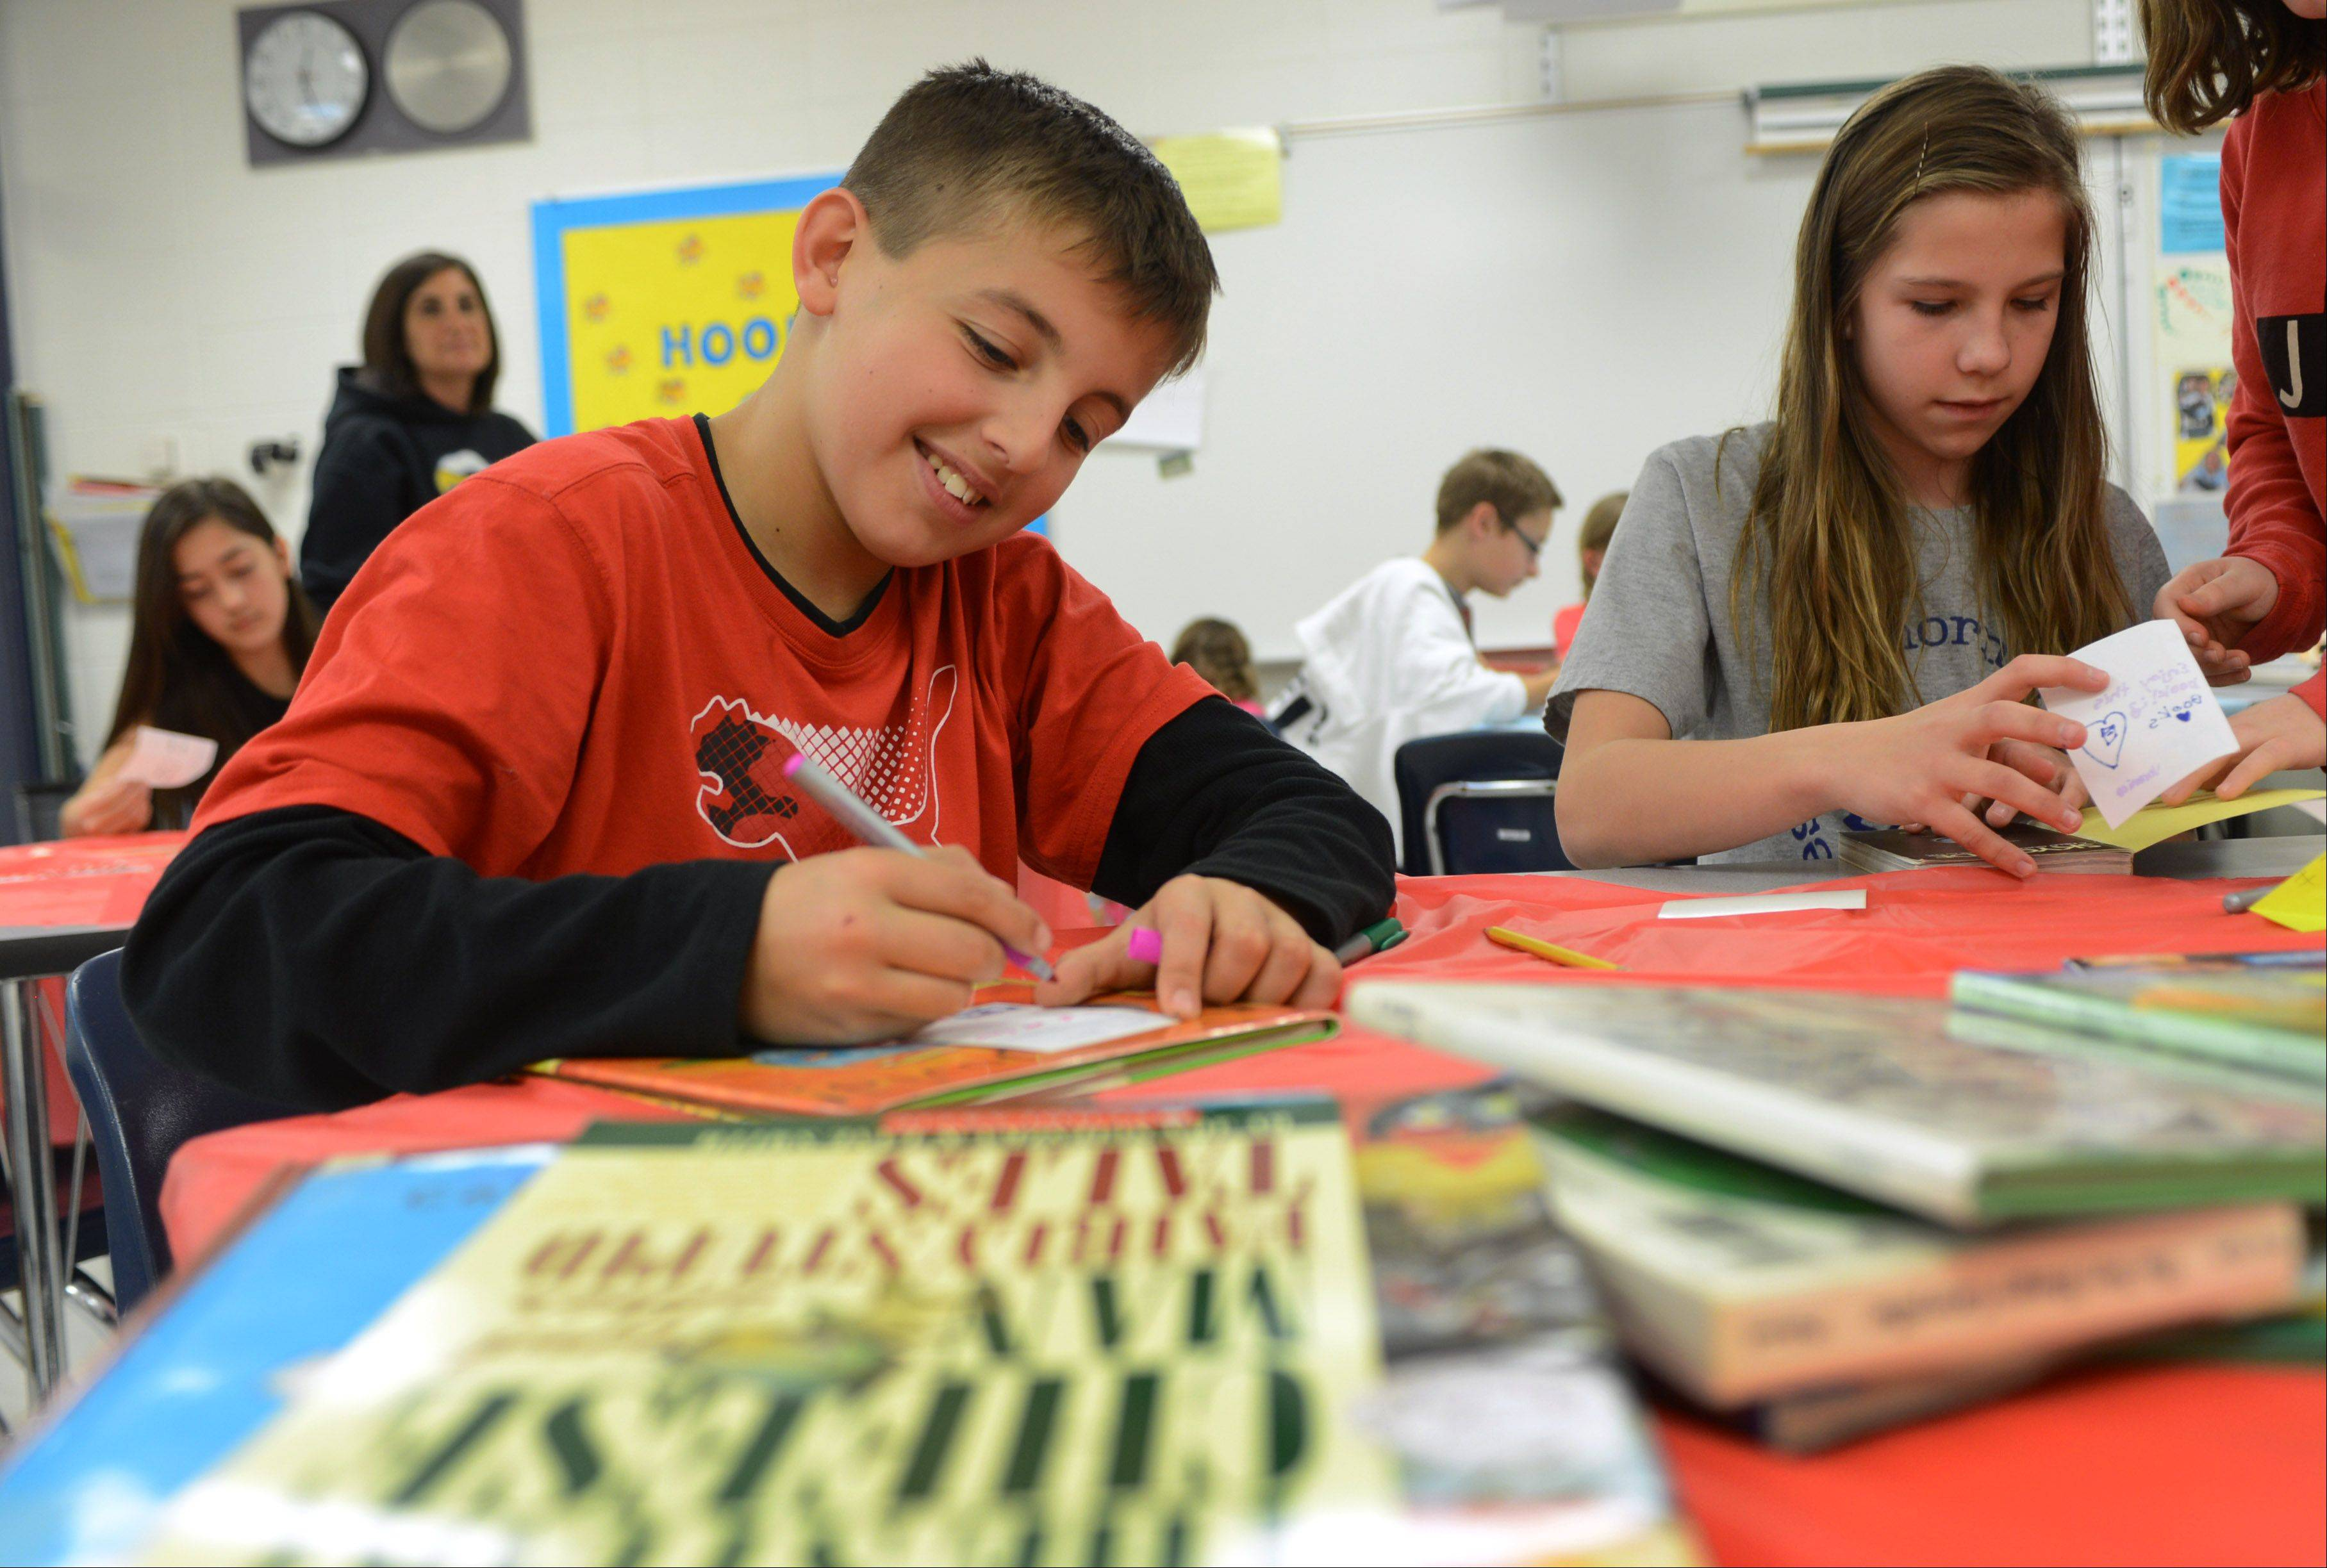 Hawthorn Middle School North sixth grade students Michael Svistun, left, and Veronica Gawin write personal notes to place inside donated books at the Vernon Hills school Friday. Students in Rachel Serlin�s Language Arts classes collected around 500 books to donate to PADS Lake County.